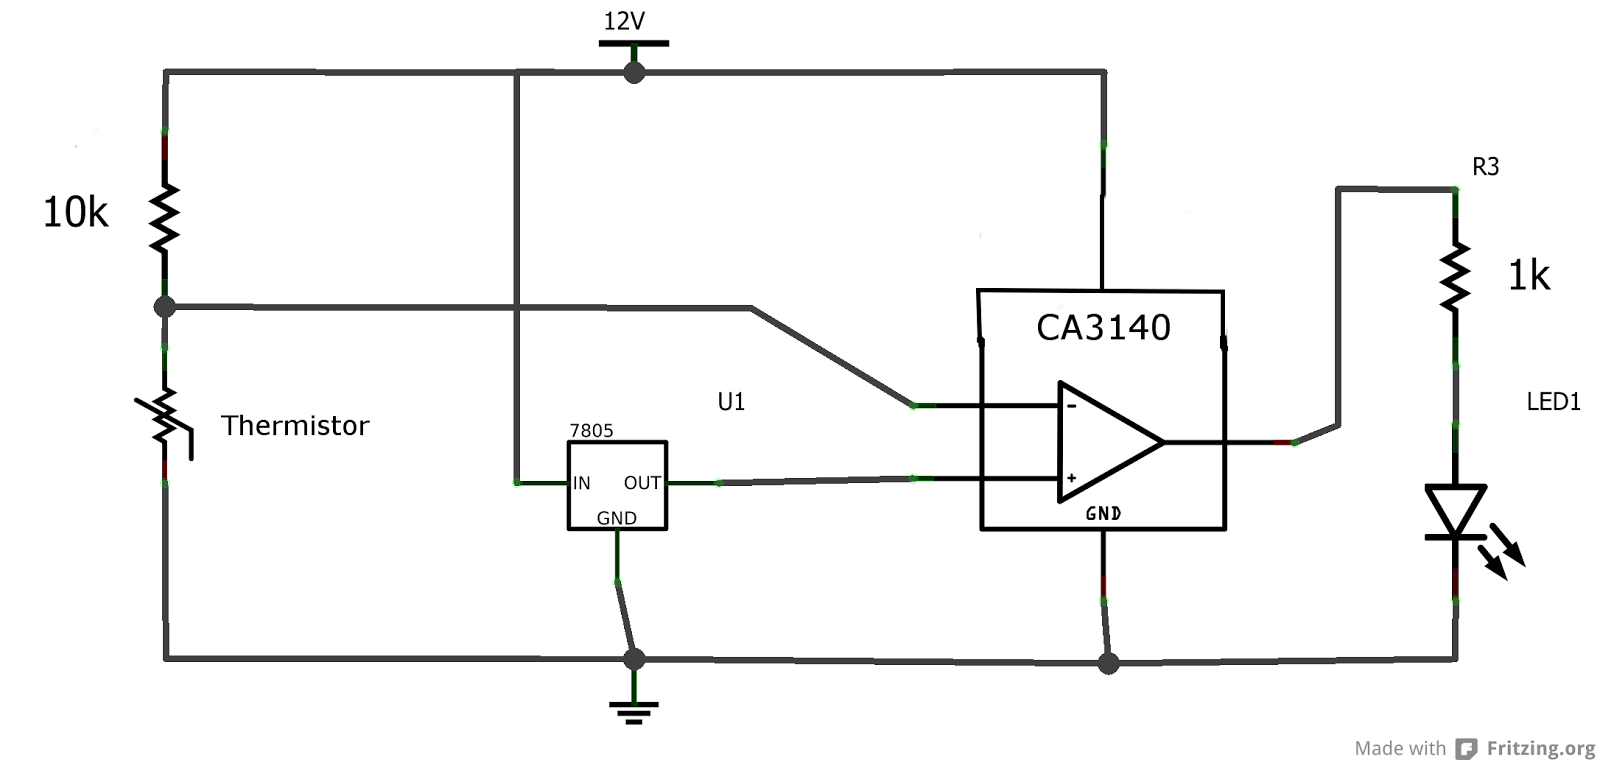 Electronics Projects And Tutorials The Op Amp As A Comparator How To Build Simple Thermistor Circuit Is Resistance That Varying With Temperature At Room Measured About 10k But When I Touch It